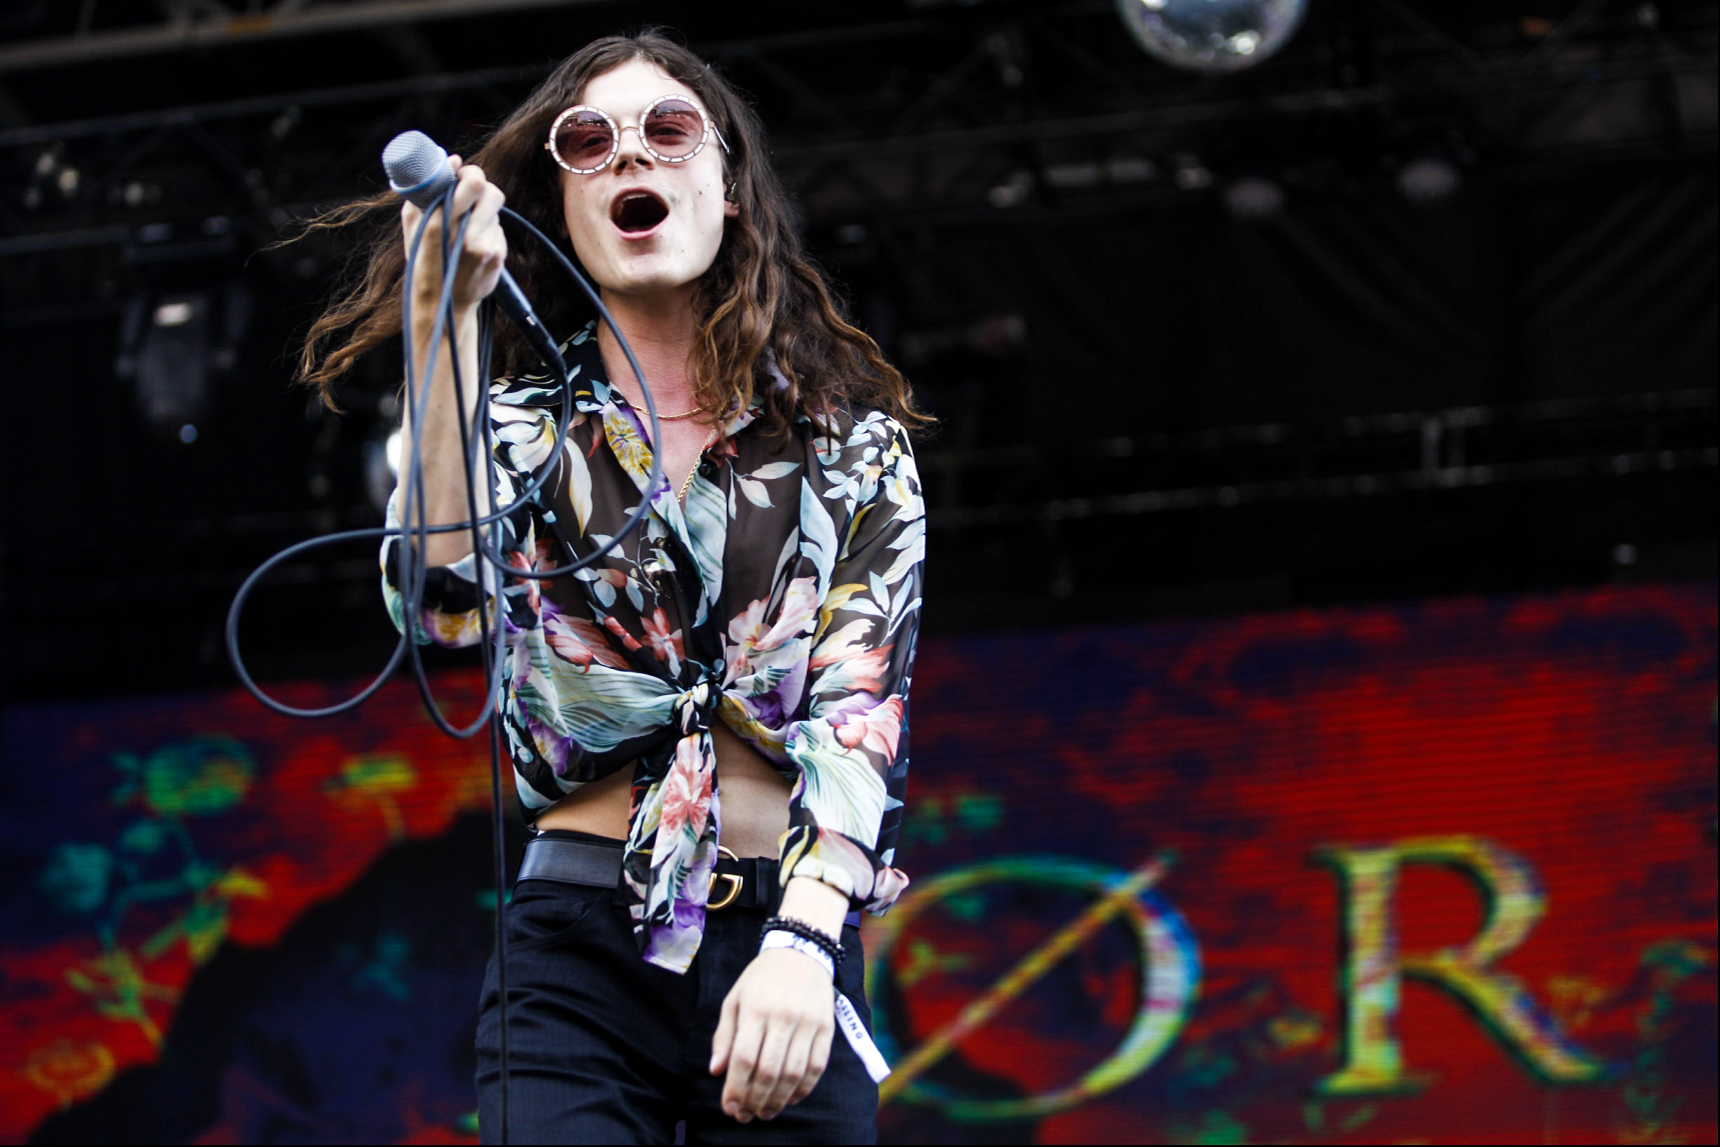 Børns performs during the second day of the festival.